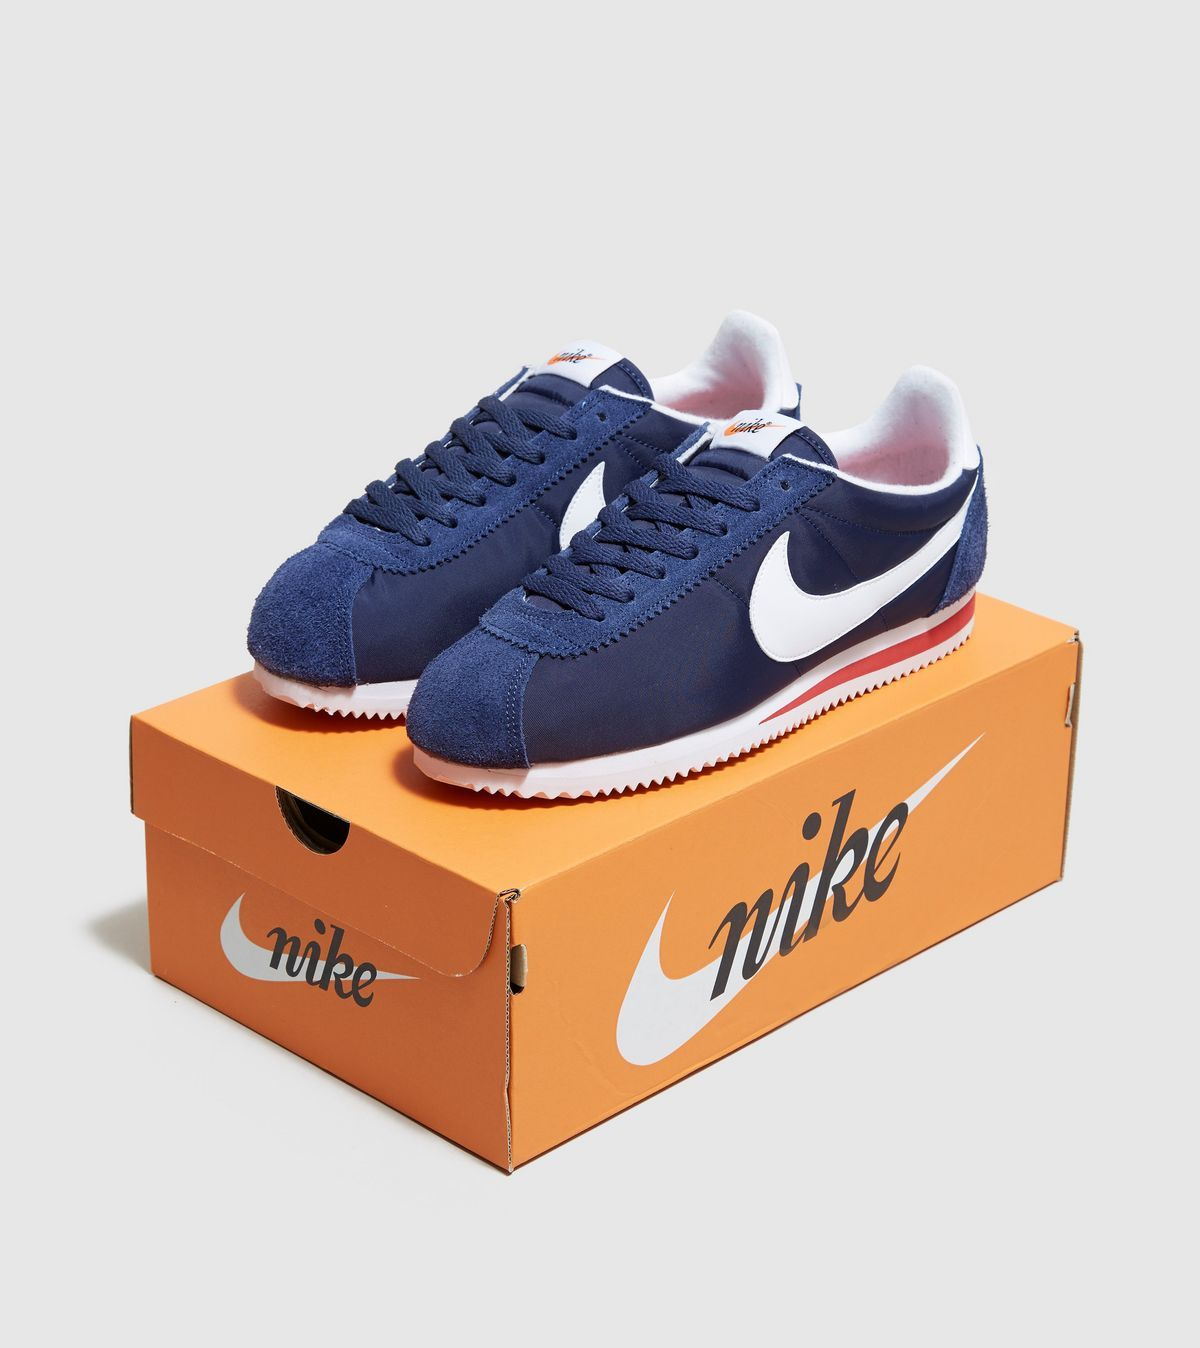 hot sales ddf85 5b25a Nike Cortez Nylon - find out more on our site. Find the freshest in  trainers and clothing online now.